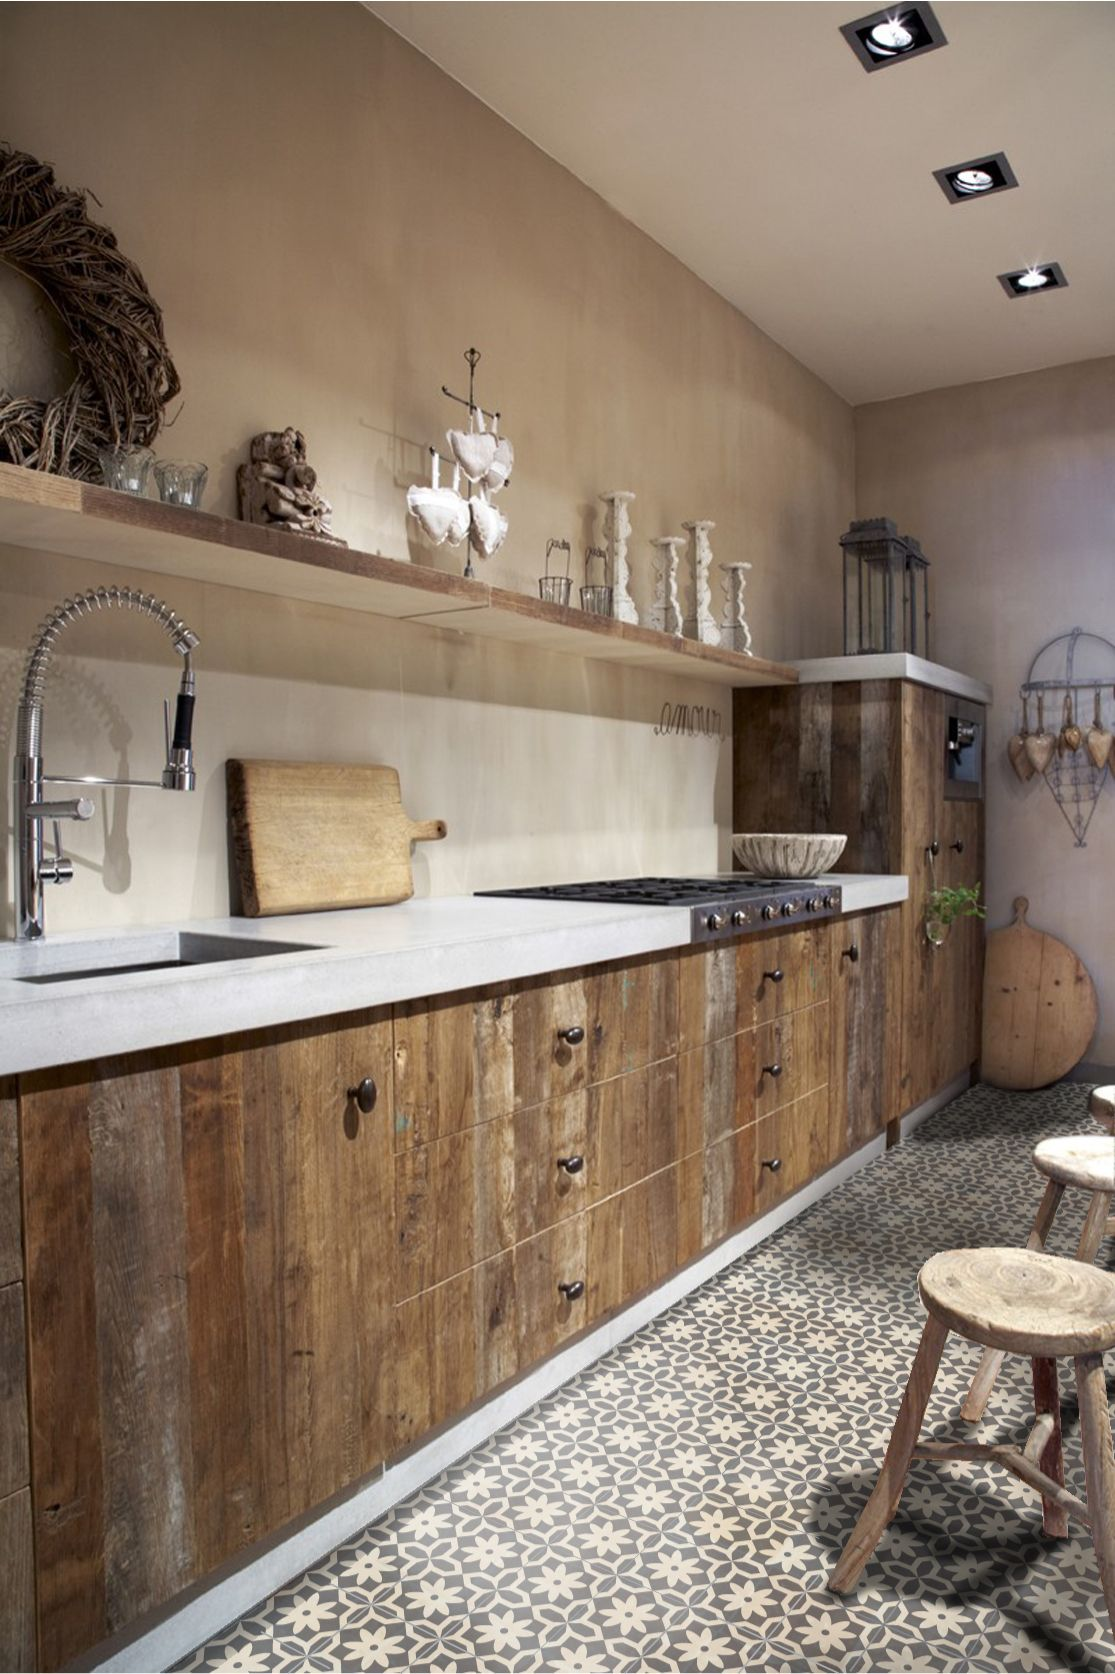 The floor tiles make a great accent to this simple/plain kitchen. #LGLimitlessDesign & #Contest